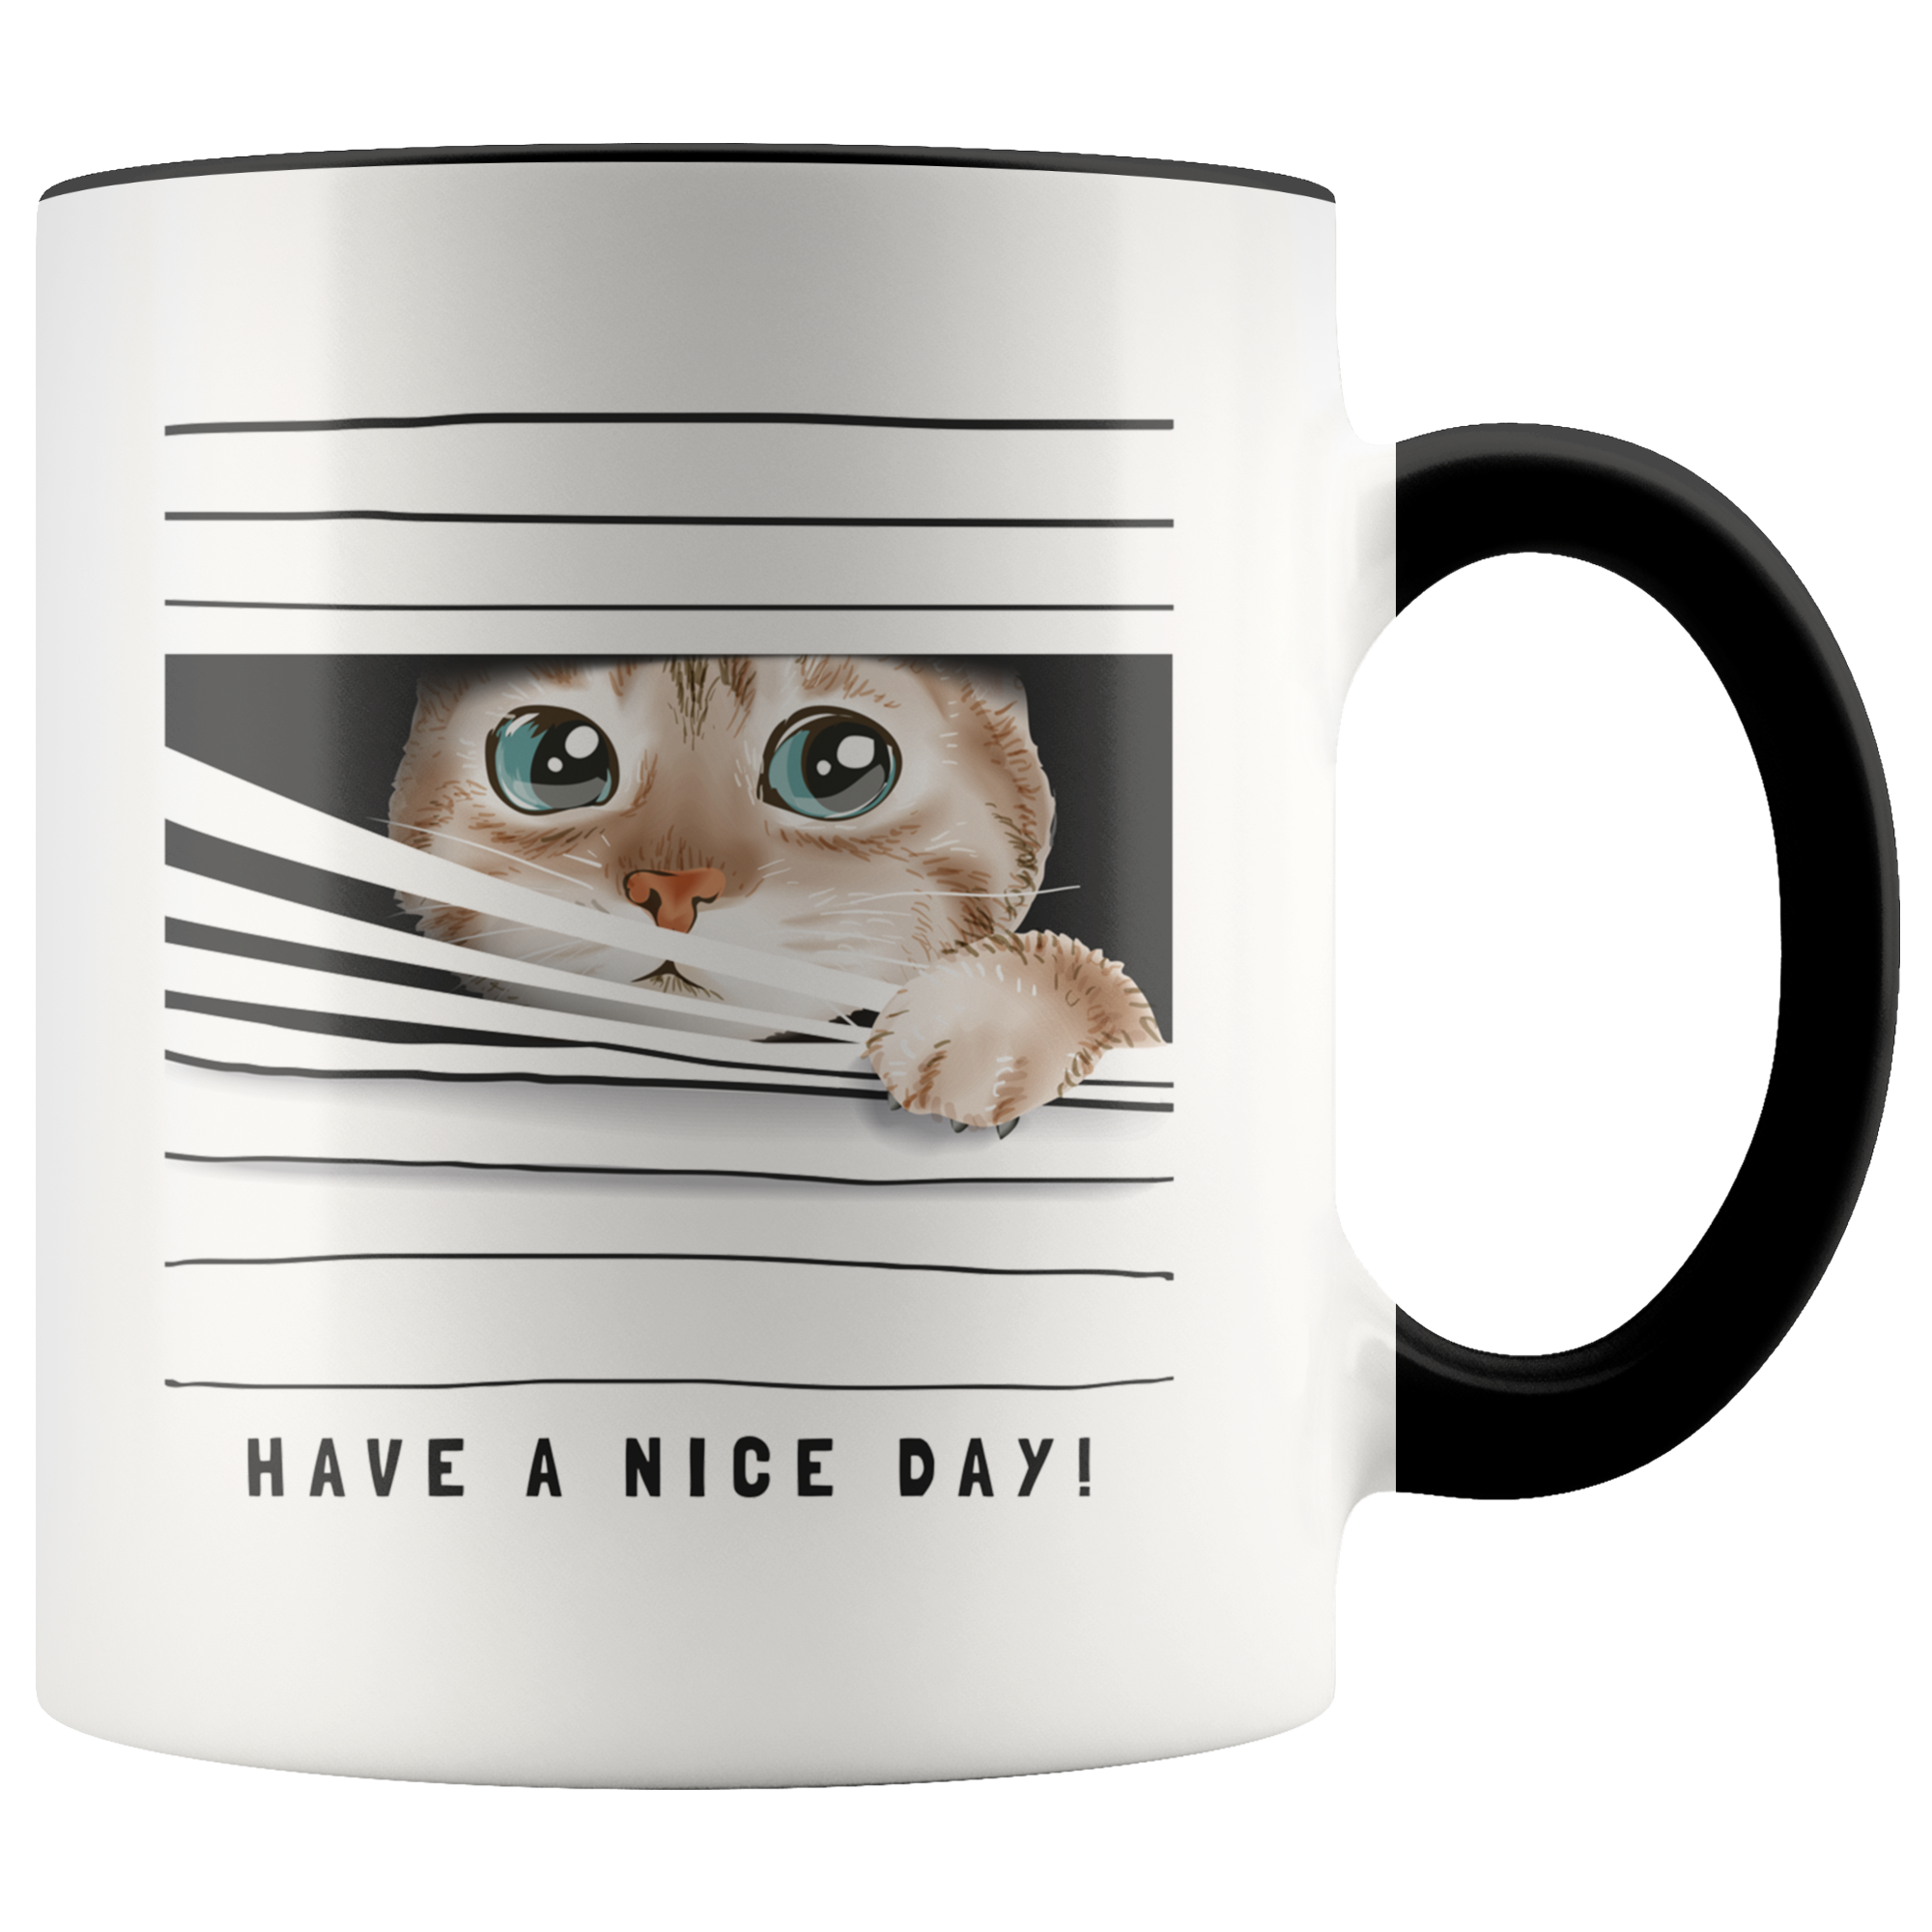 Cute Peeking Cat Mug – Have A Nice Day!